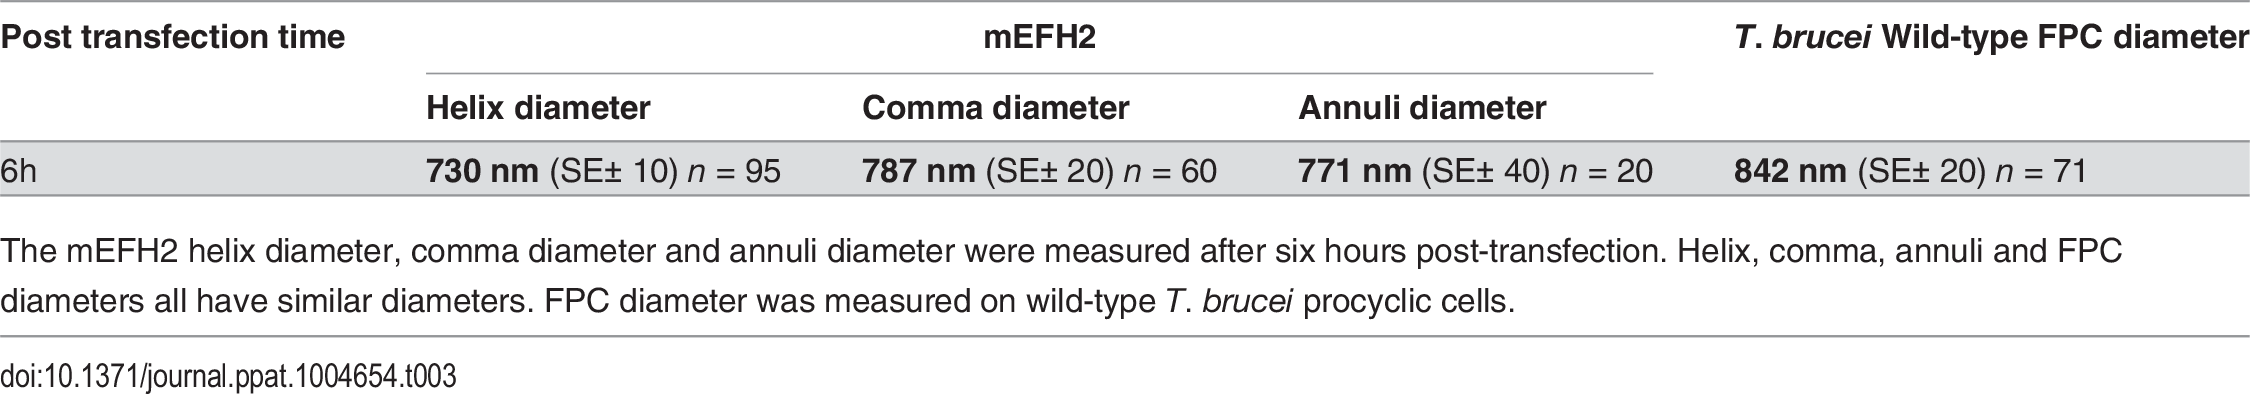 Mean mEFH2-induced helix, coma and annuli diameter after expression in U-2 OS cells and mean FPC diameter.